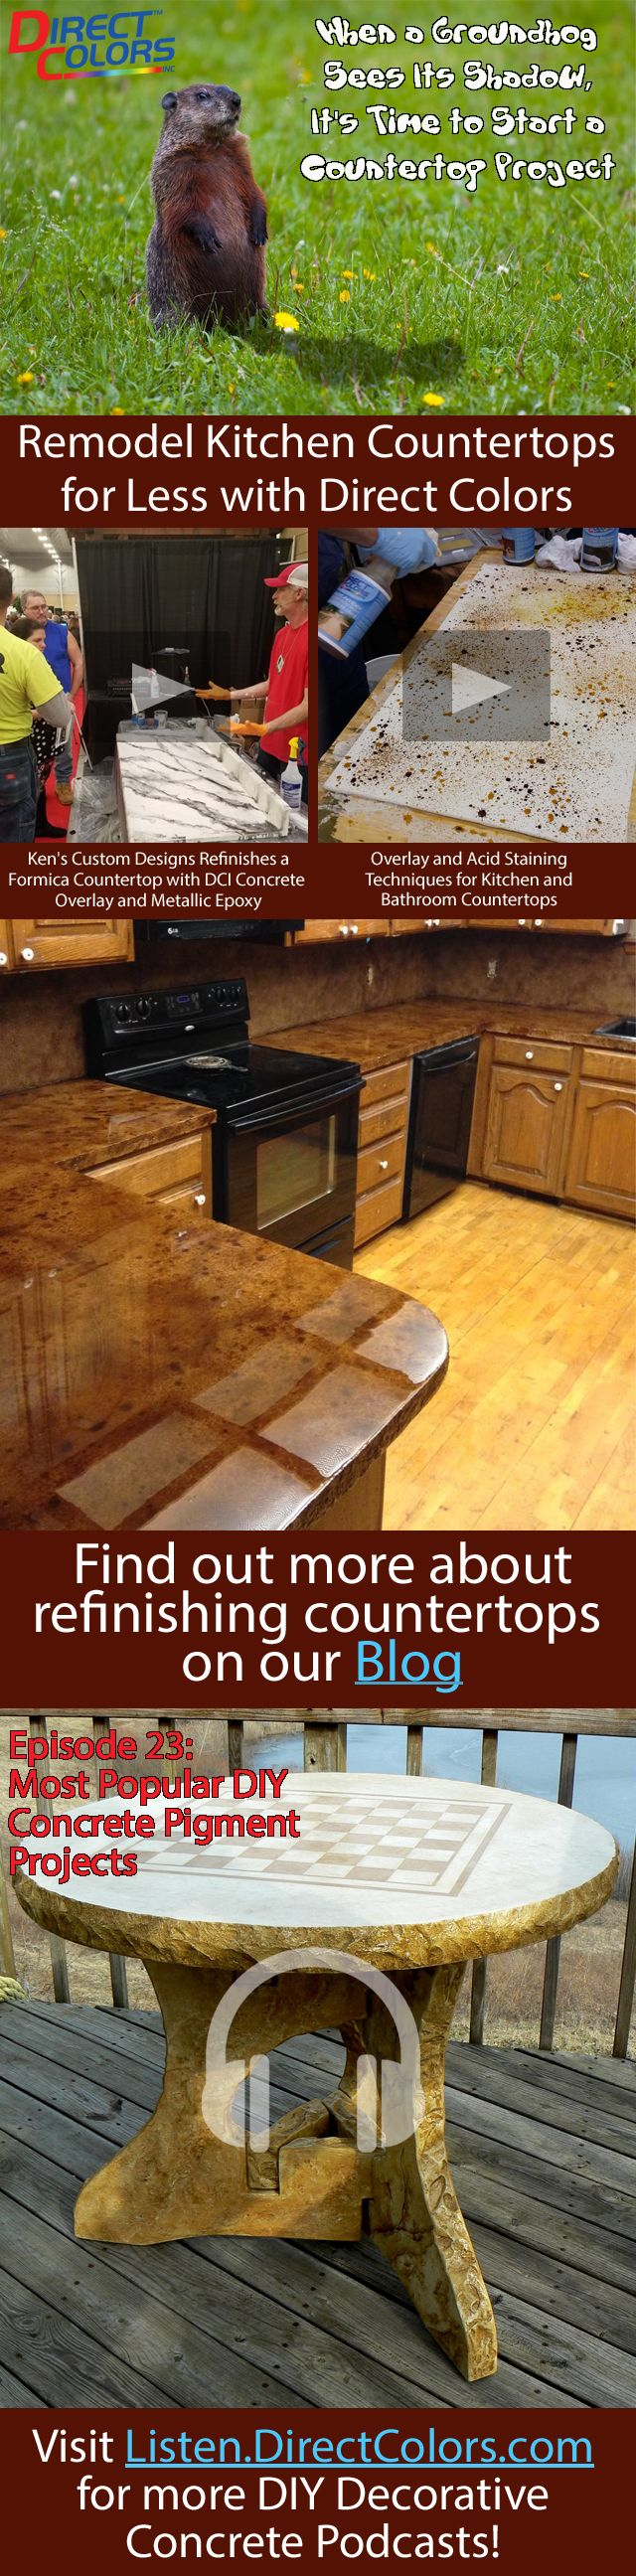 146 best Do It Yourself Concrete Countertops images on Pinterest ...